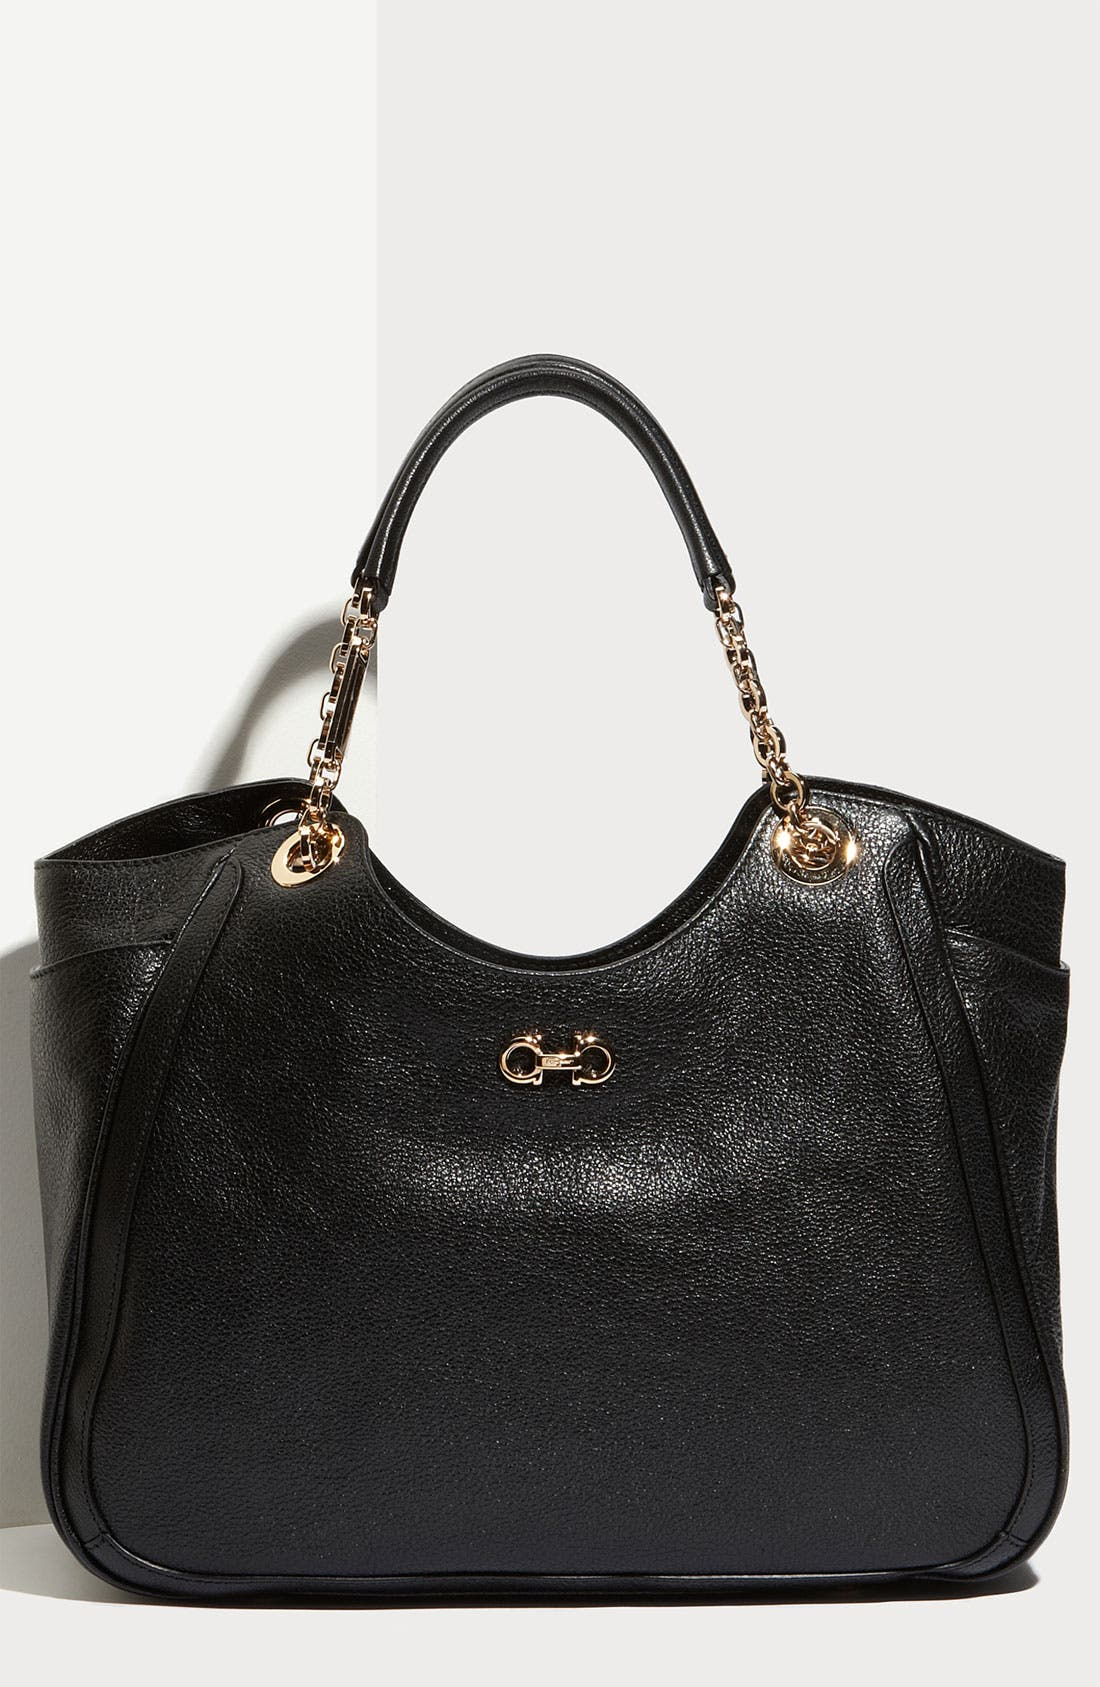 Main Image - Salvatore Ferragamo 'Betulla Chain' Leather Shopper